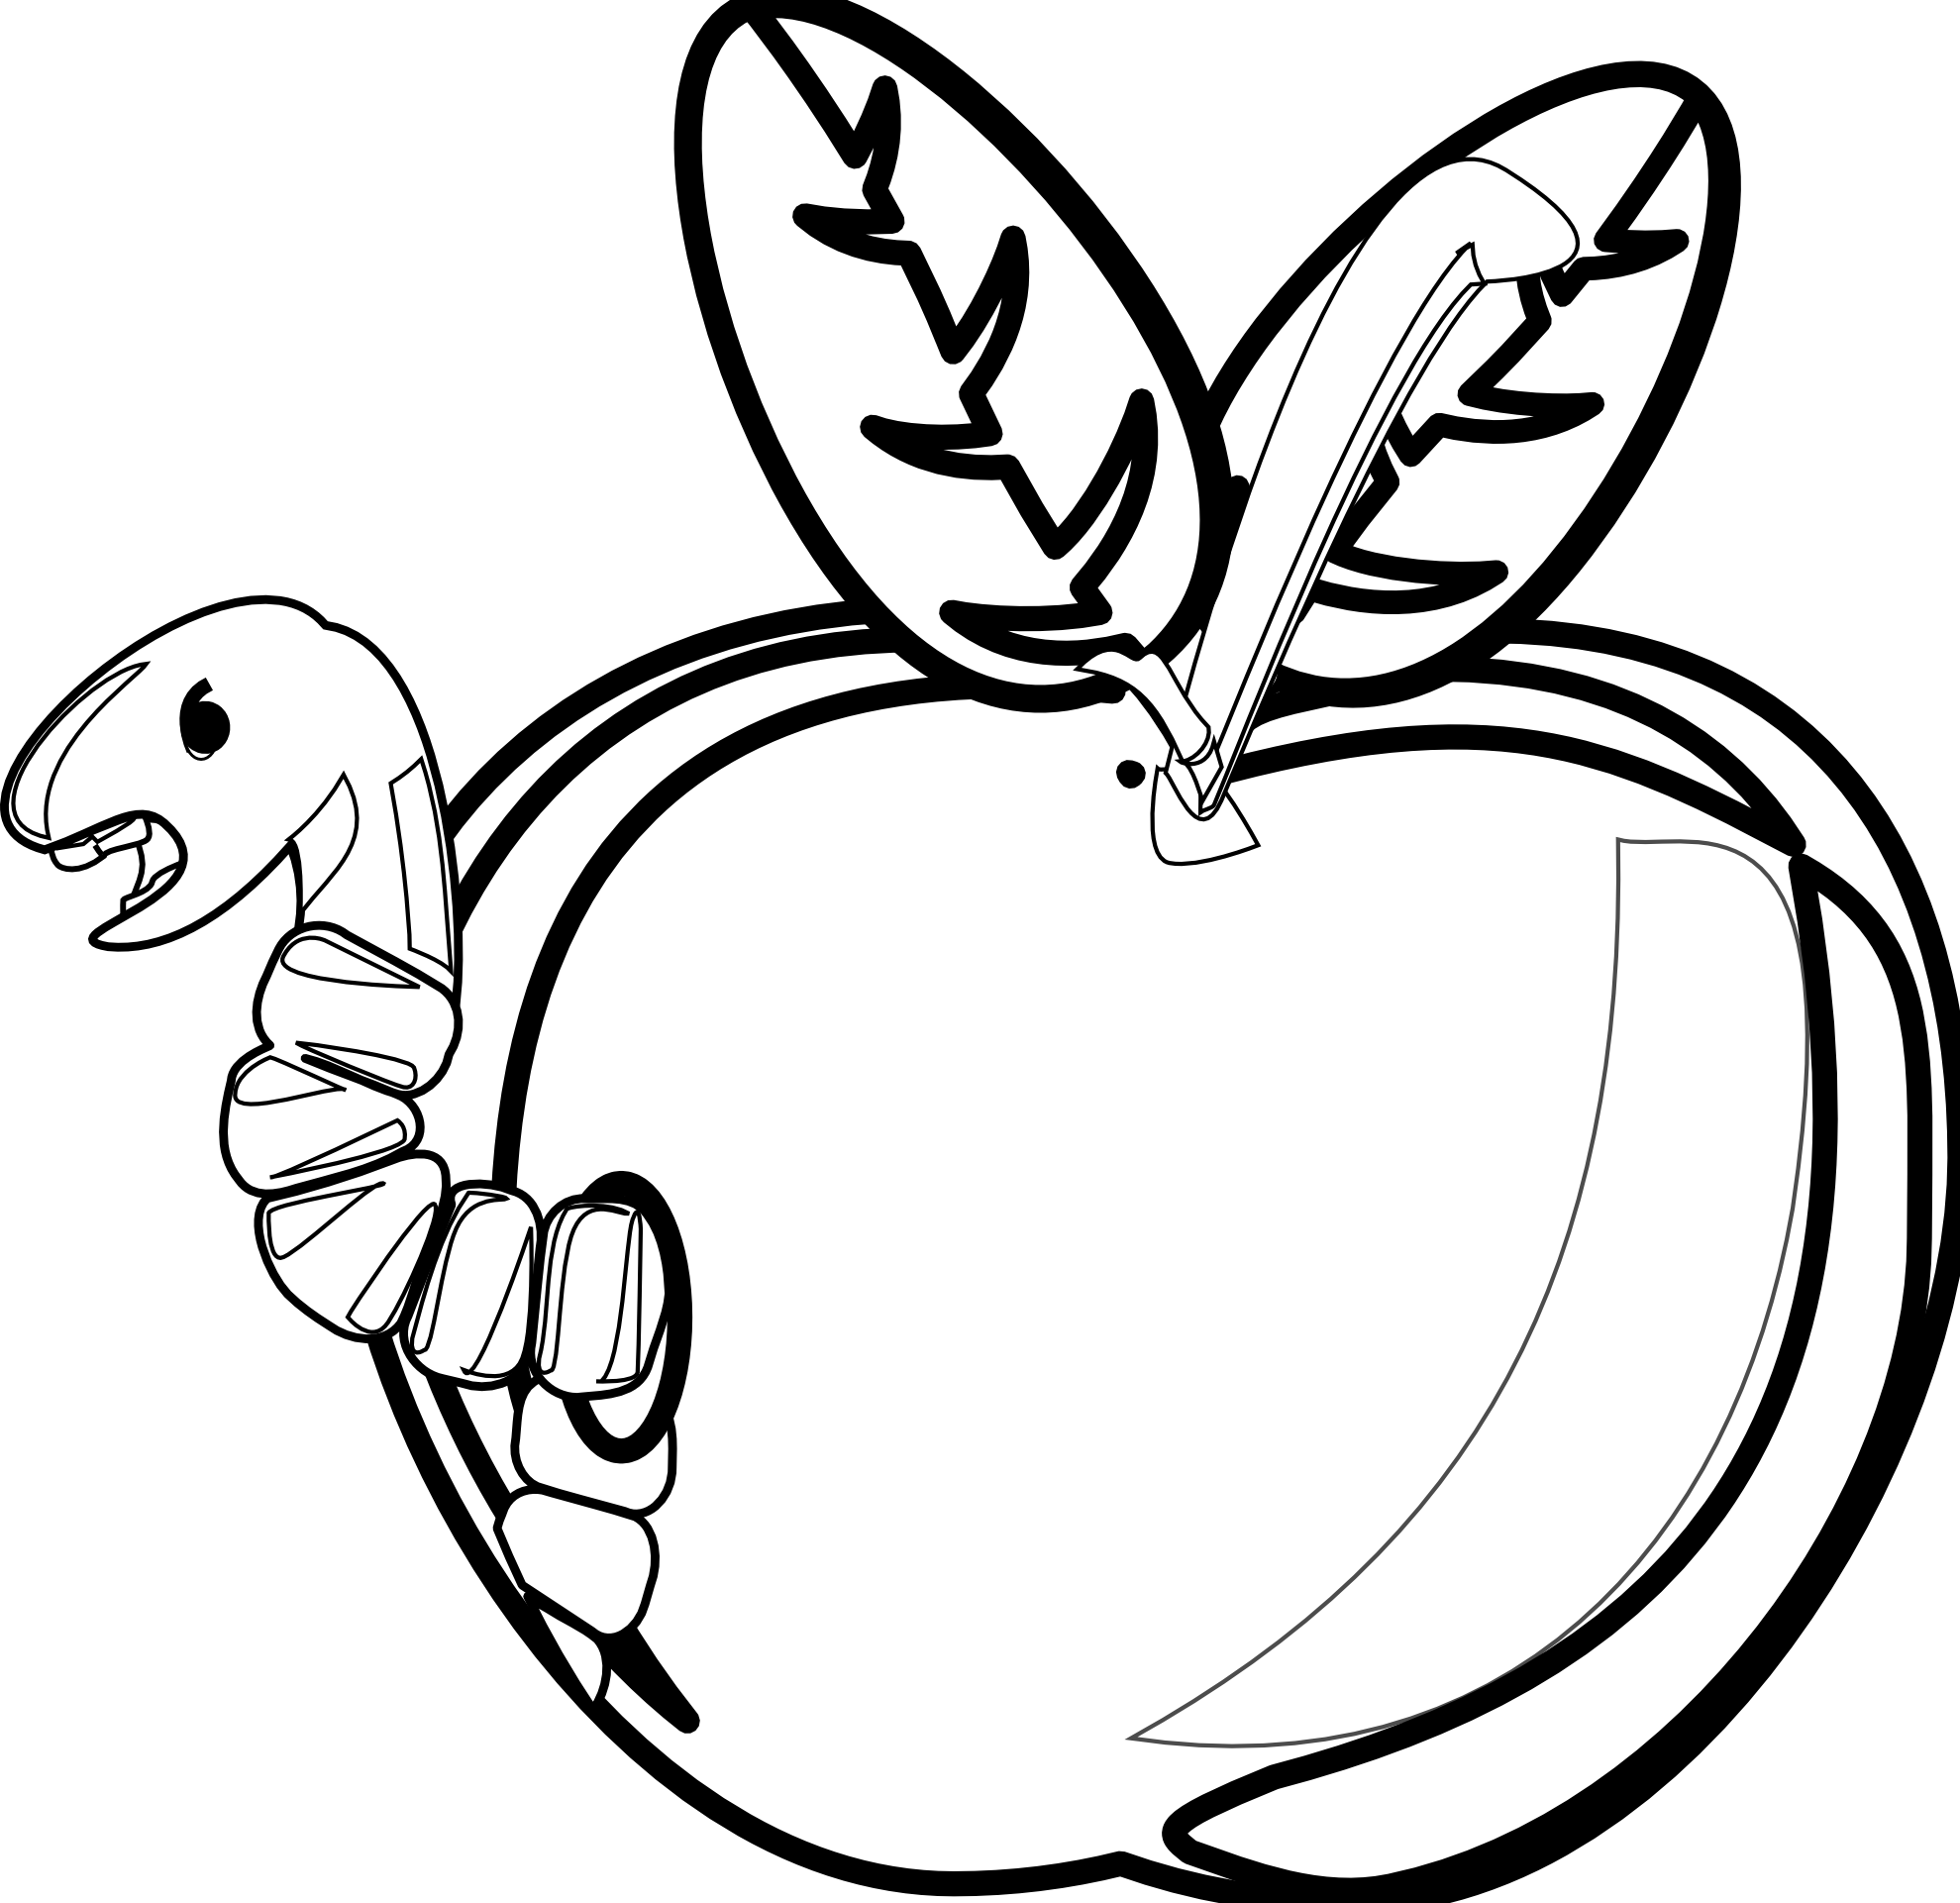 Drawing vegetables black and white. Fruits svg freeuse